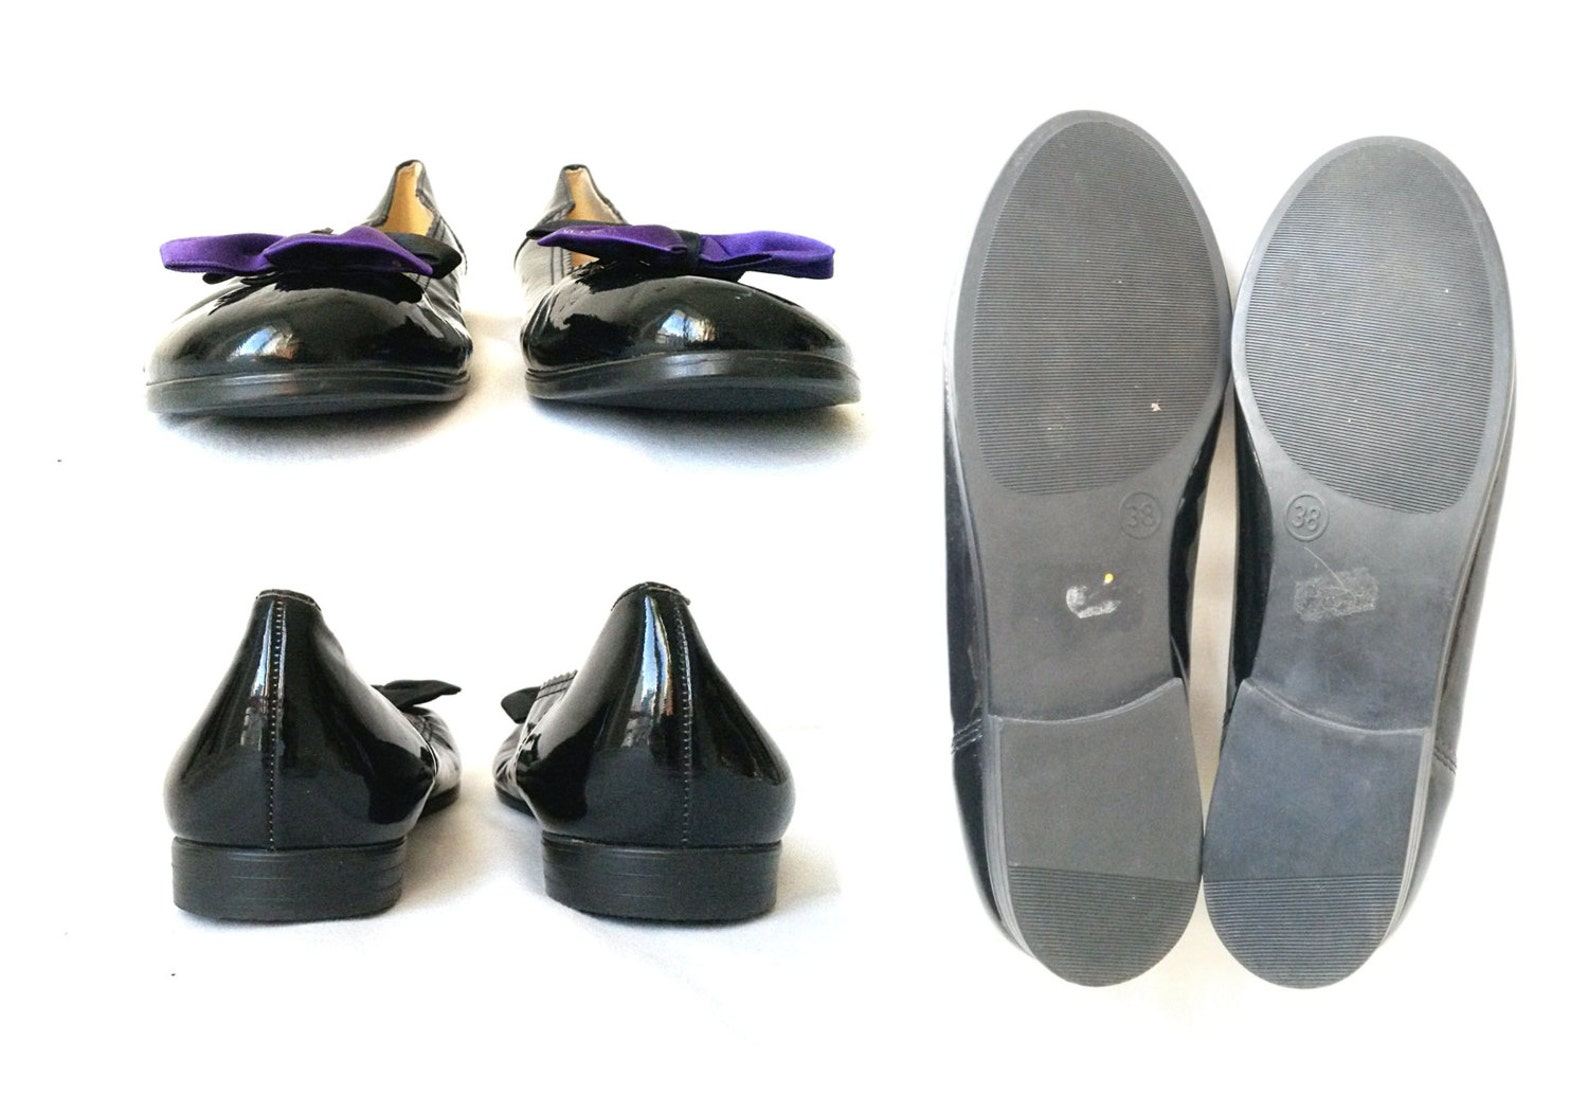 90s kawaii flats cute flats ribbon flats funky flats black purple ballet flats with ribbon mod flats anime / size 7 us / 4.5 uk